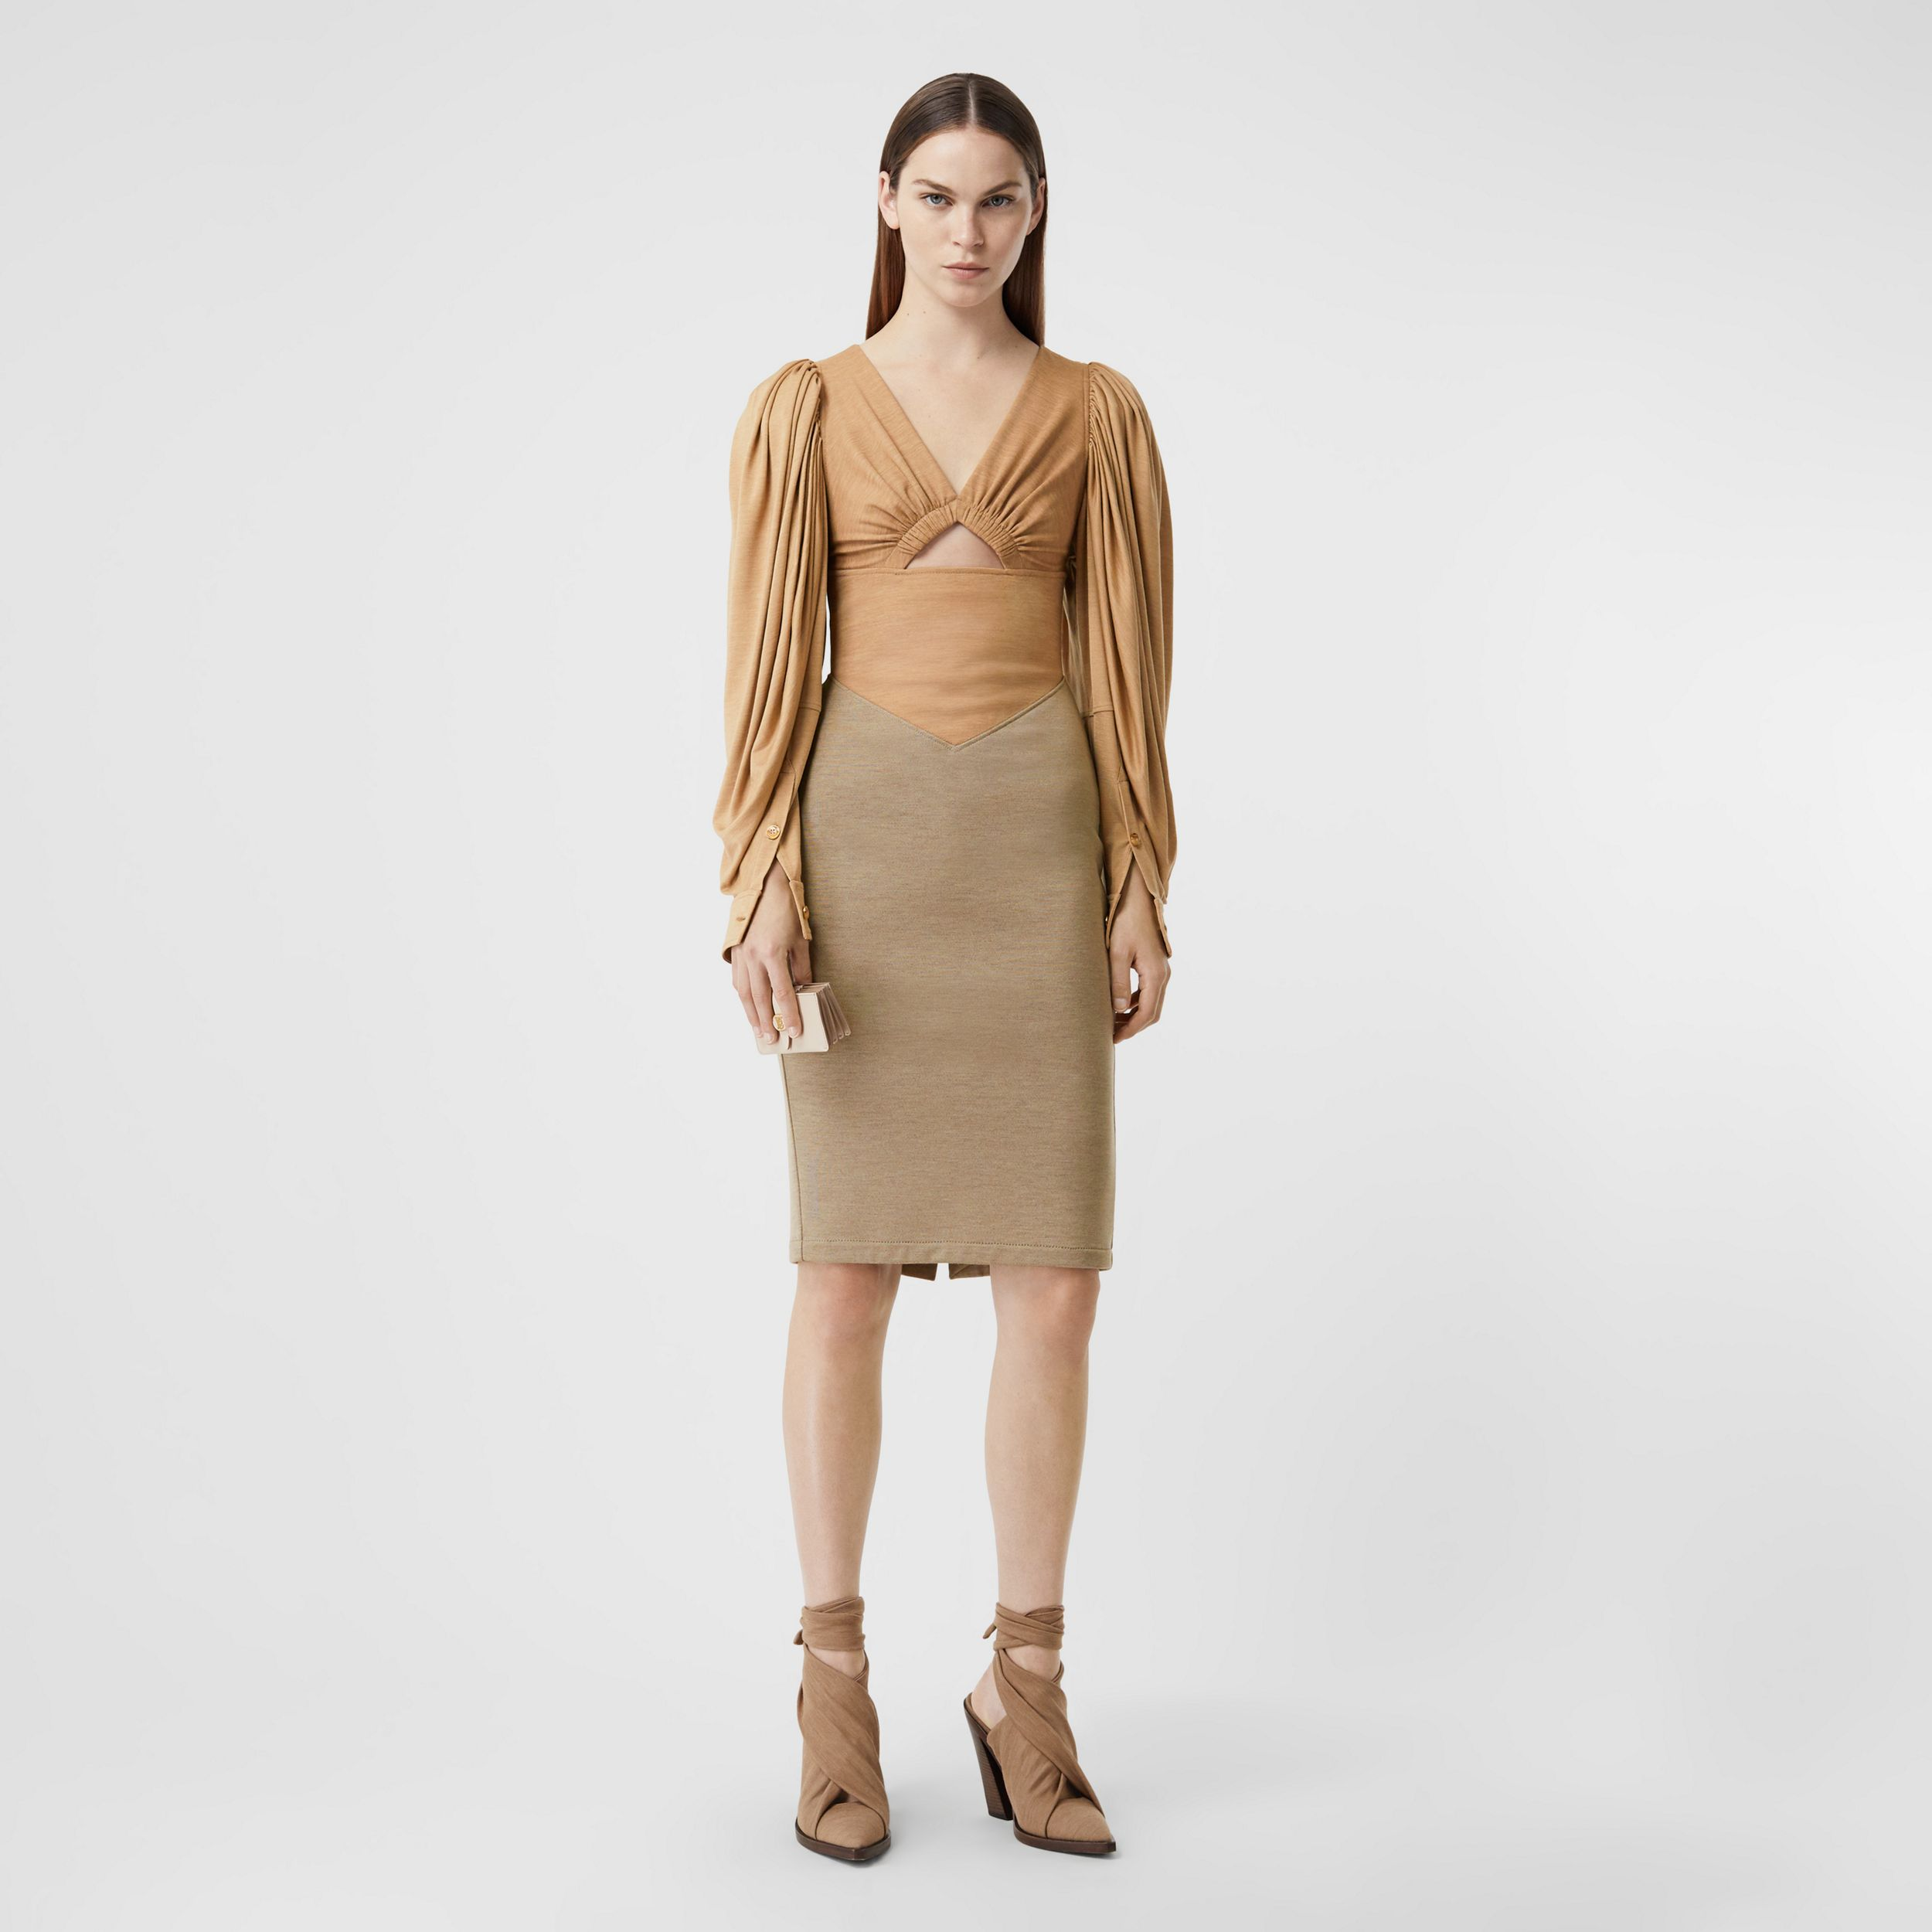 Panelled Wool Silk Jersey Dress in Pecan Melange - Women | Burberry - 1